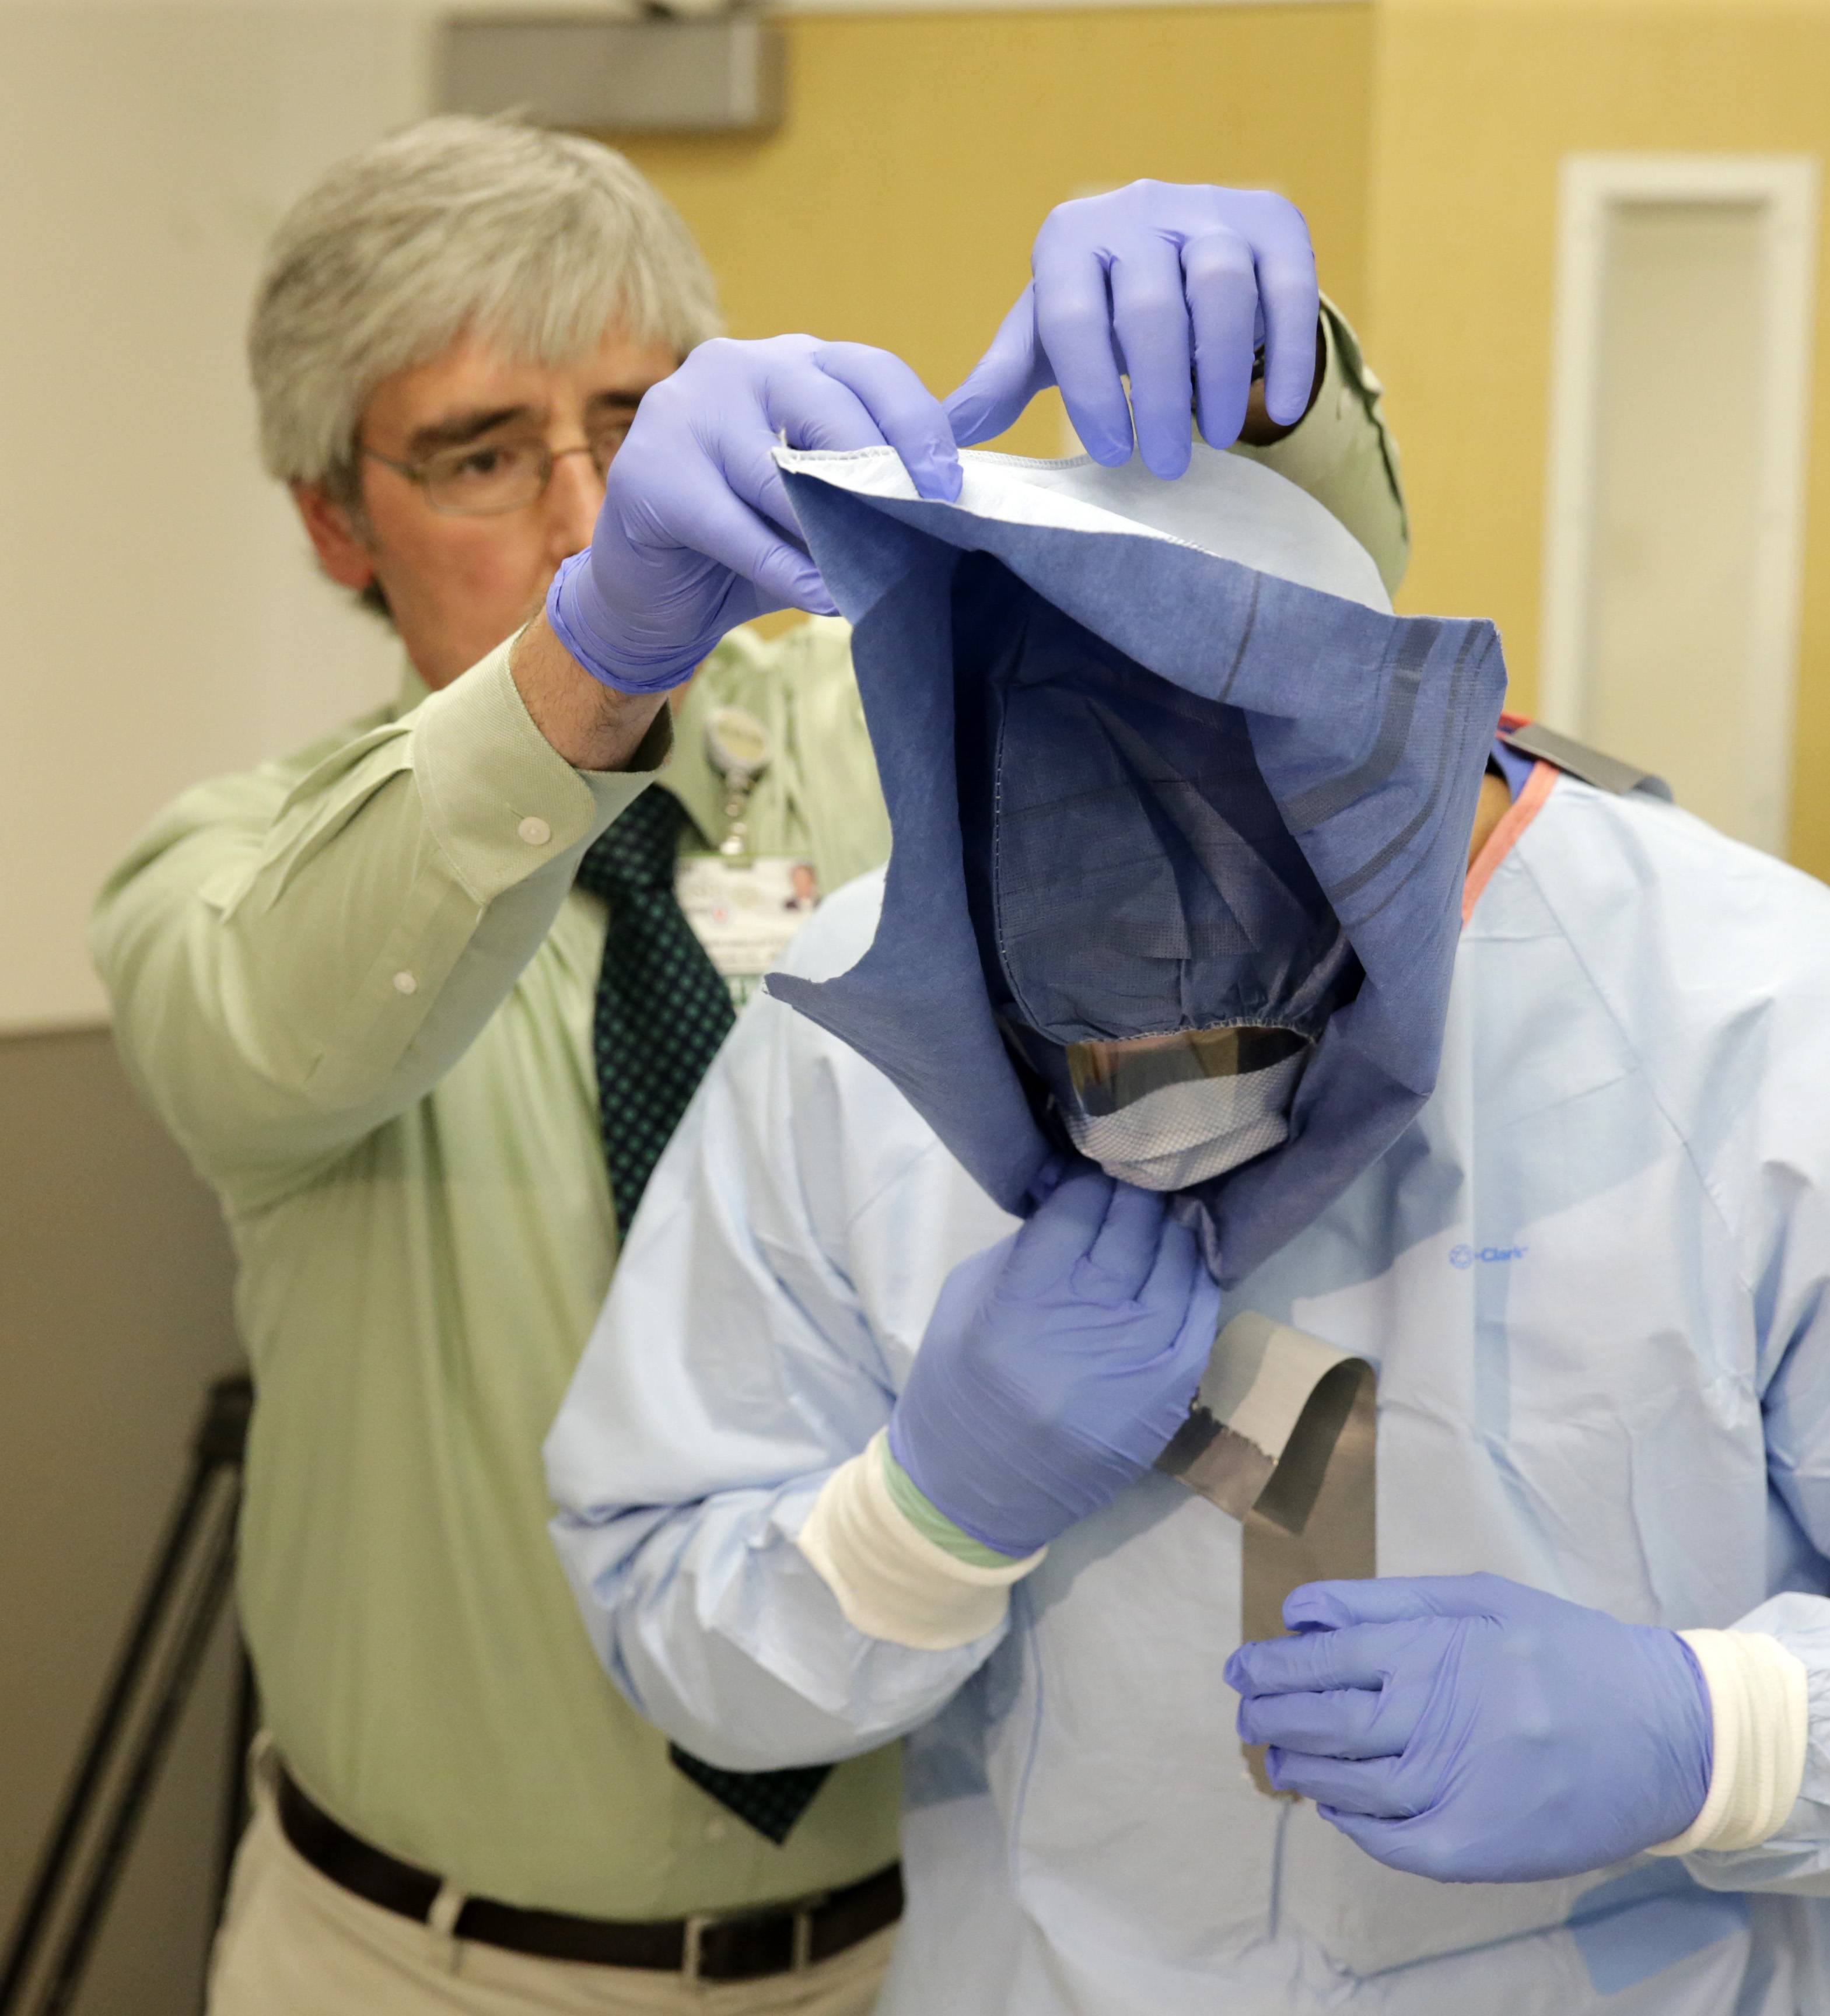 Nurse Keene Roadman demonstrates how to remove protective equipment during a training session for doctors and nurses who might handle Ebola cases at Rush University Medical Center.